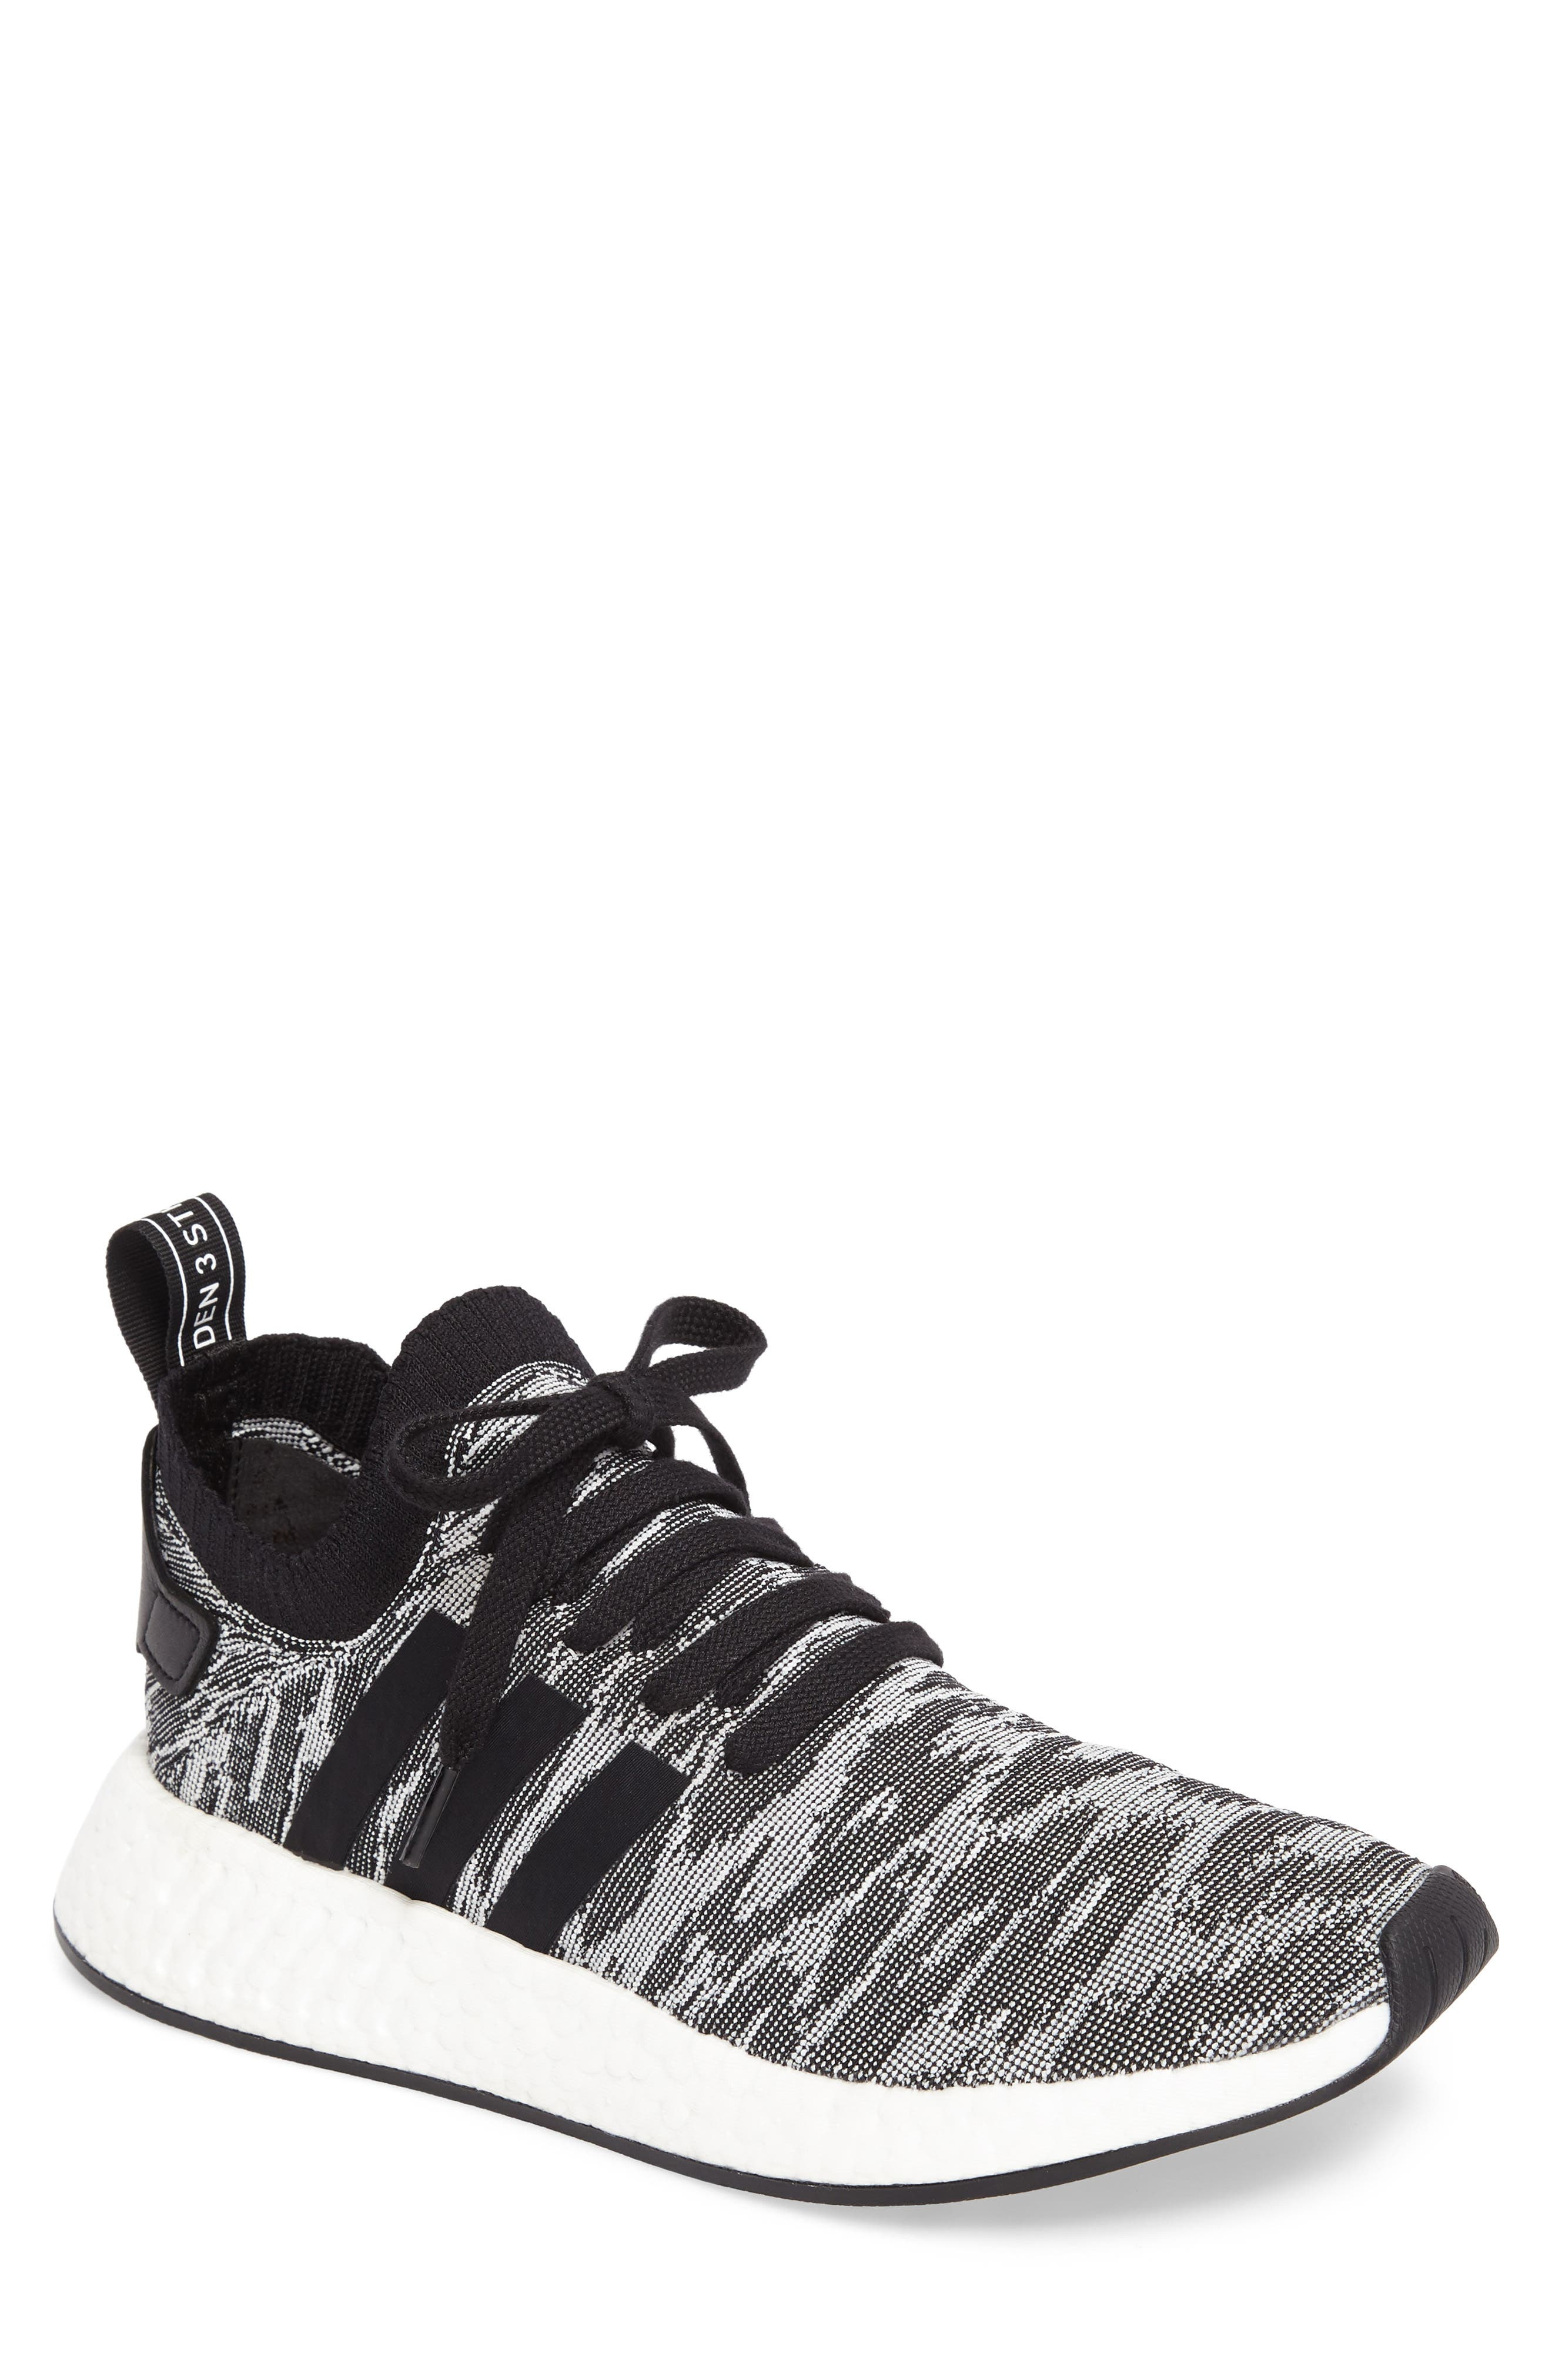 NMD R2 Primeknit Running Shoe,                             Main thumbnail 1, color,                             002